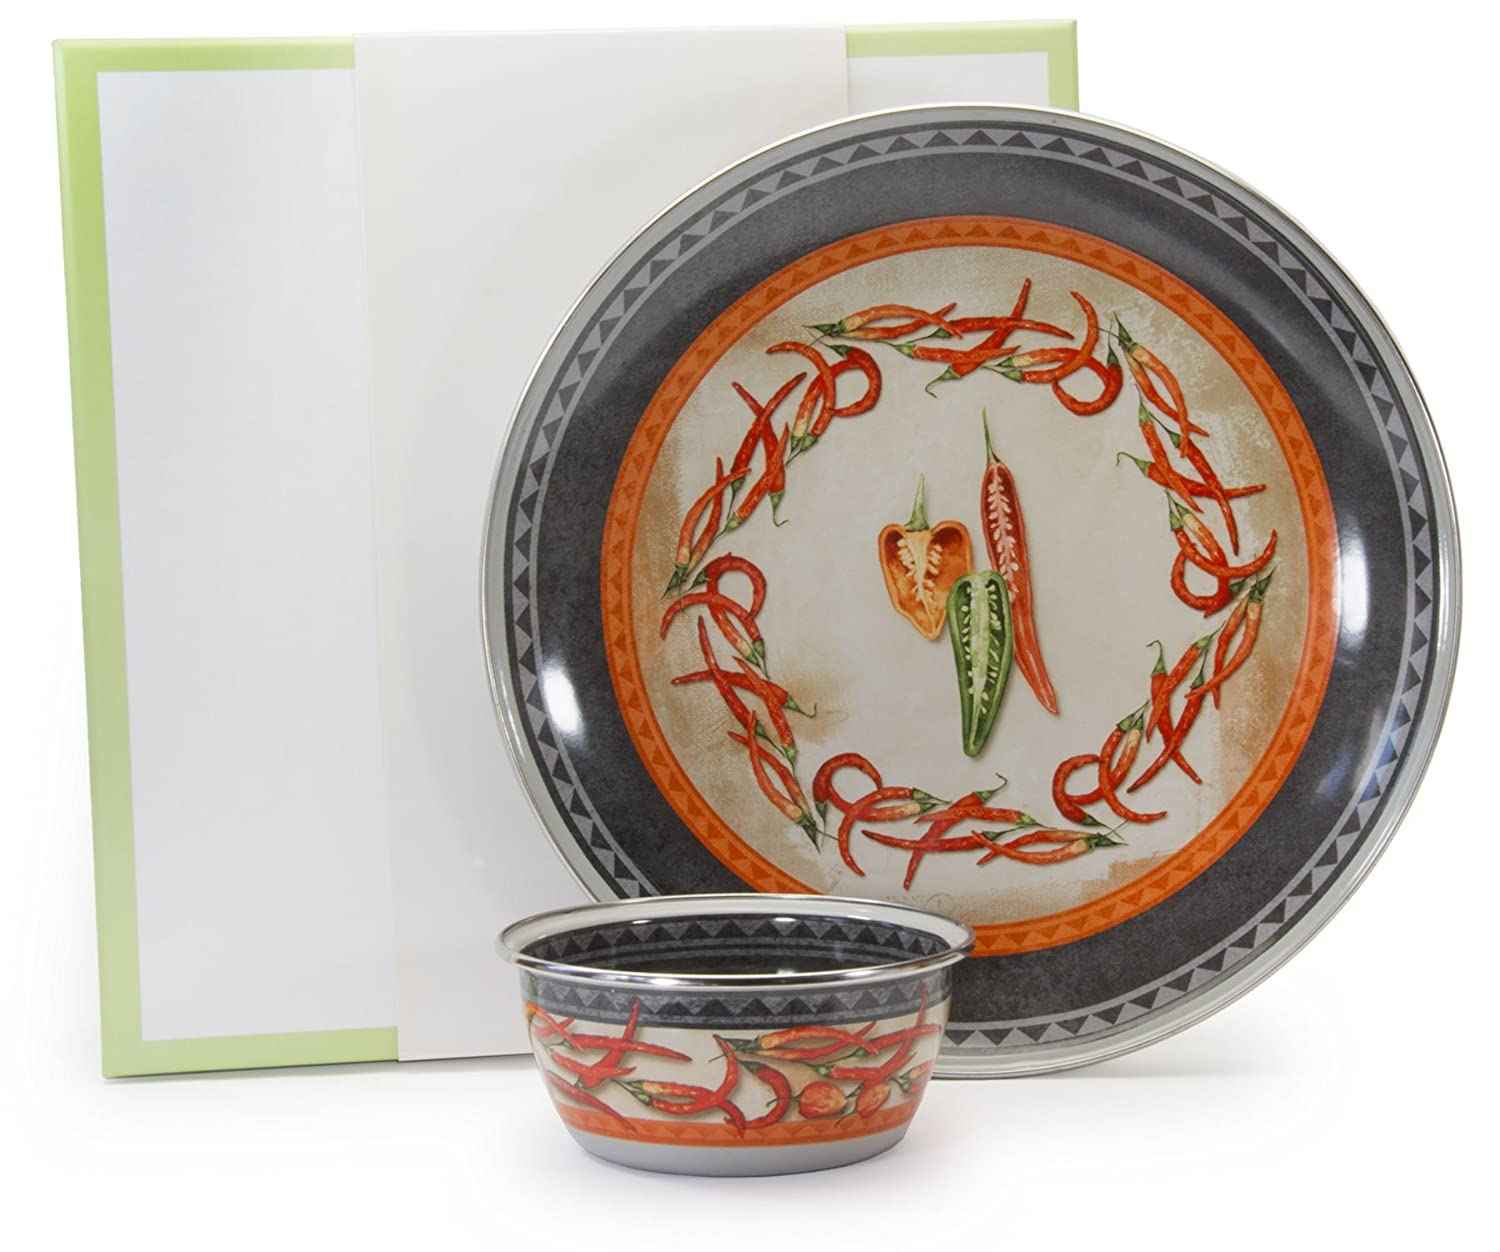 Golden Rabbit Enamelware Chili Peppers Chip and Dip Set